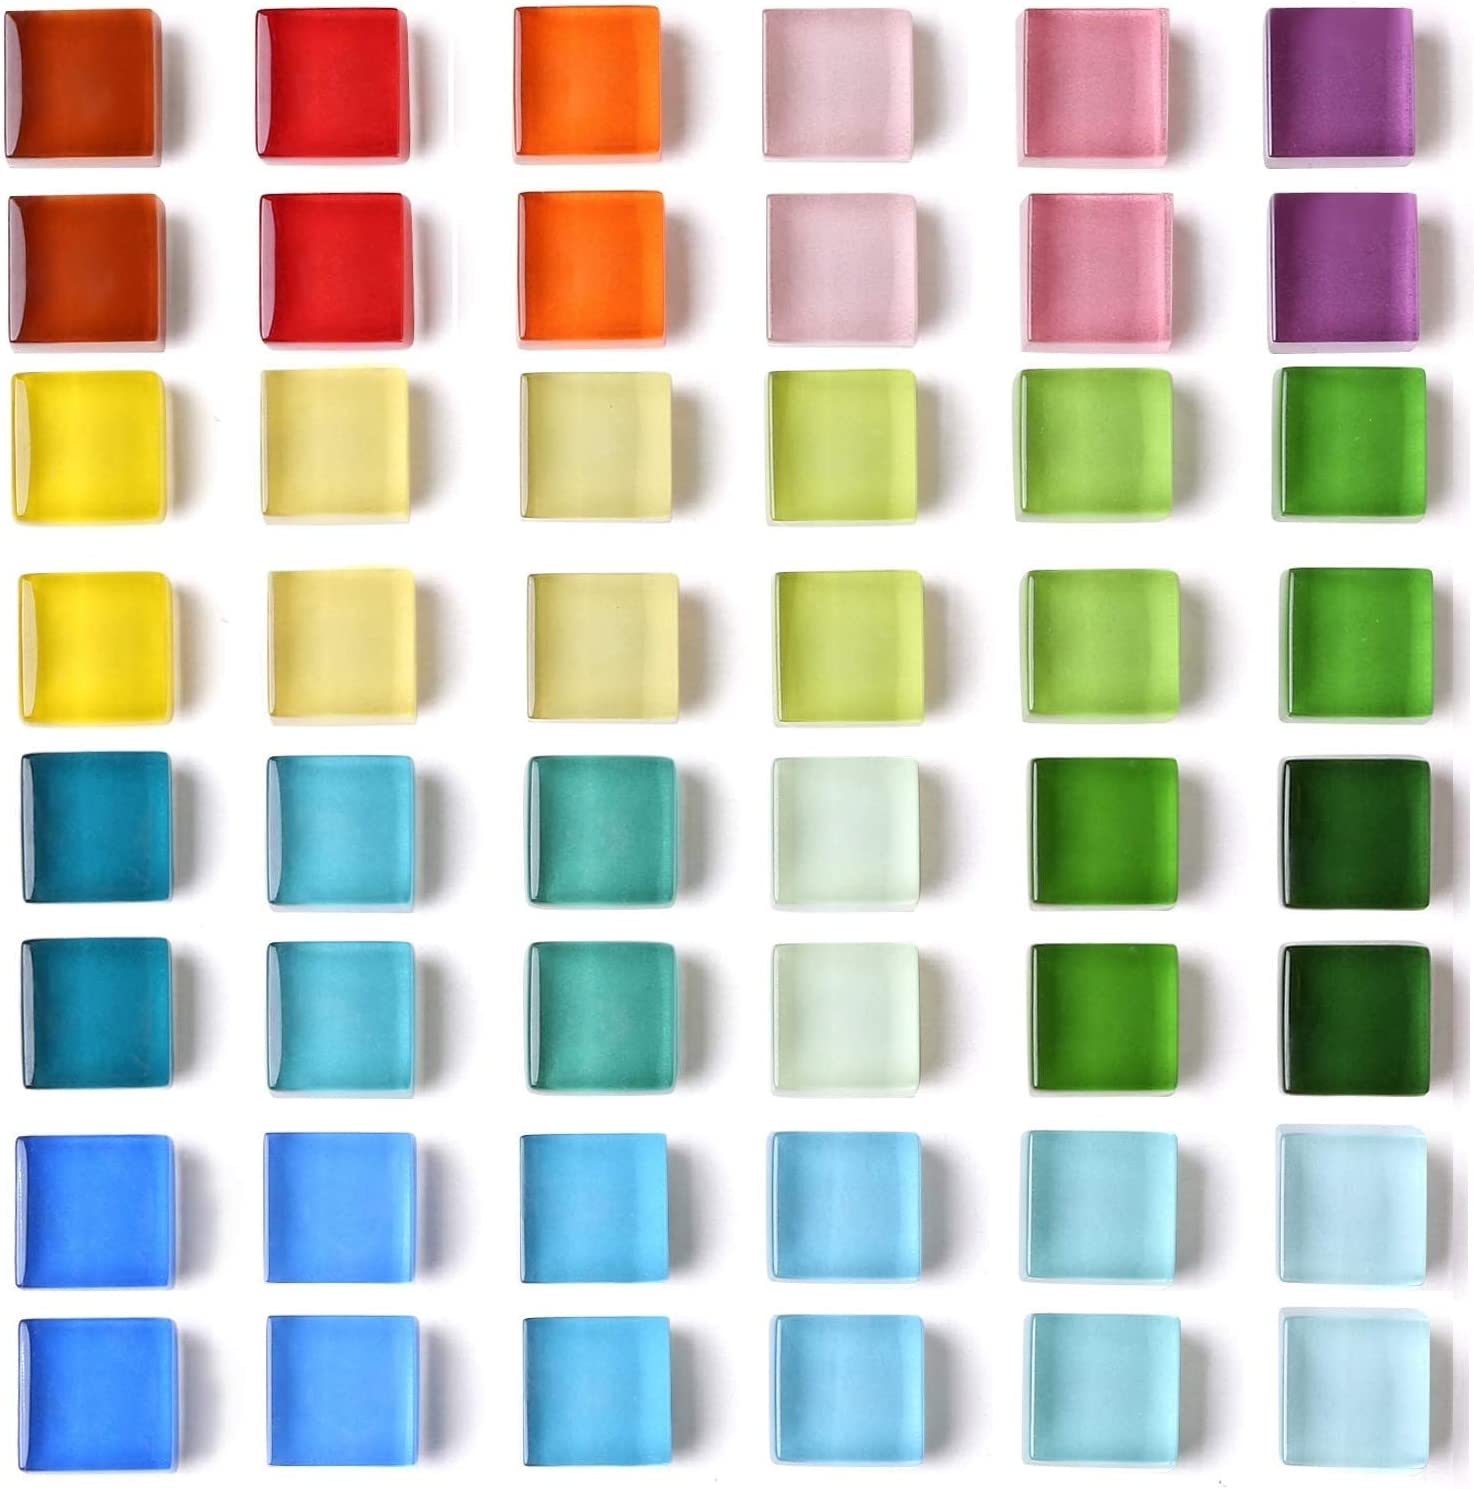 48 Refrigerator Magnets Cute Fridge Magnets for Whiteboard, Locker | Colorful Magnets Glass Decorative Magnets for Office Kitchen (24 x 2)